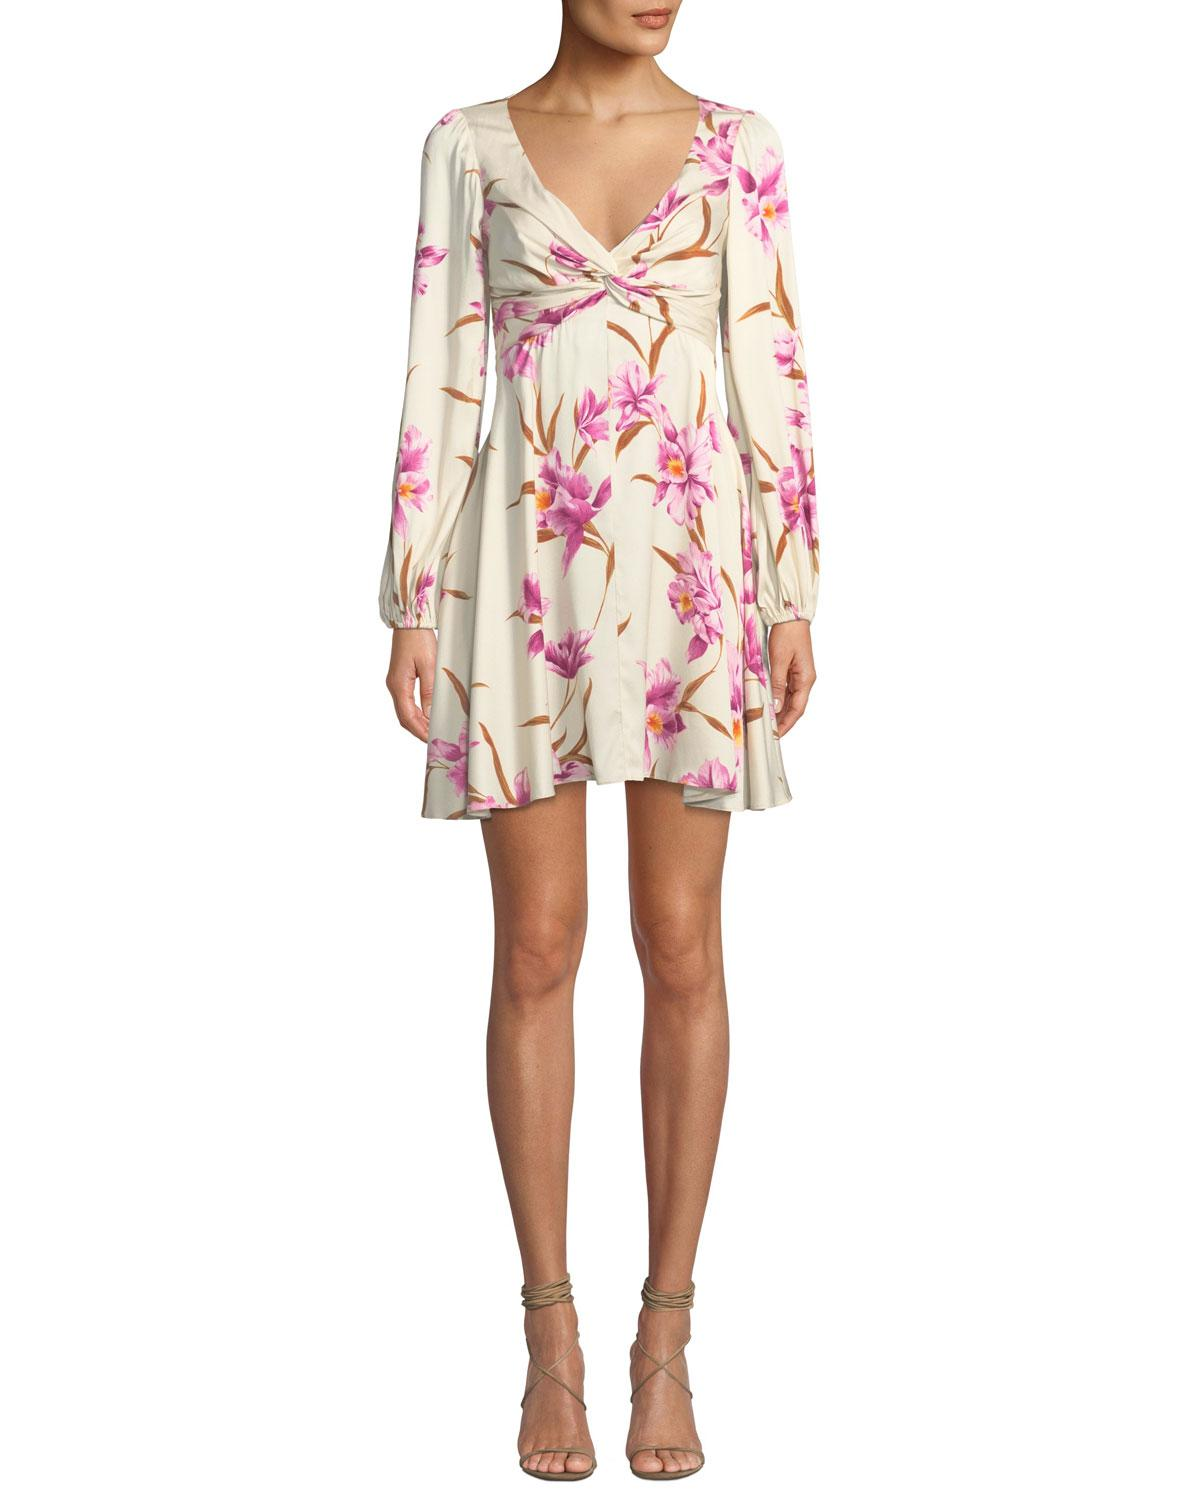 f722b8073ce Zimmermann. Women s White Corsage Knot-front Floral Short Cocktail Dress